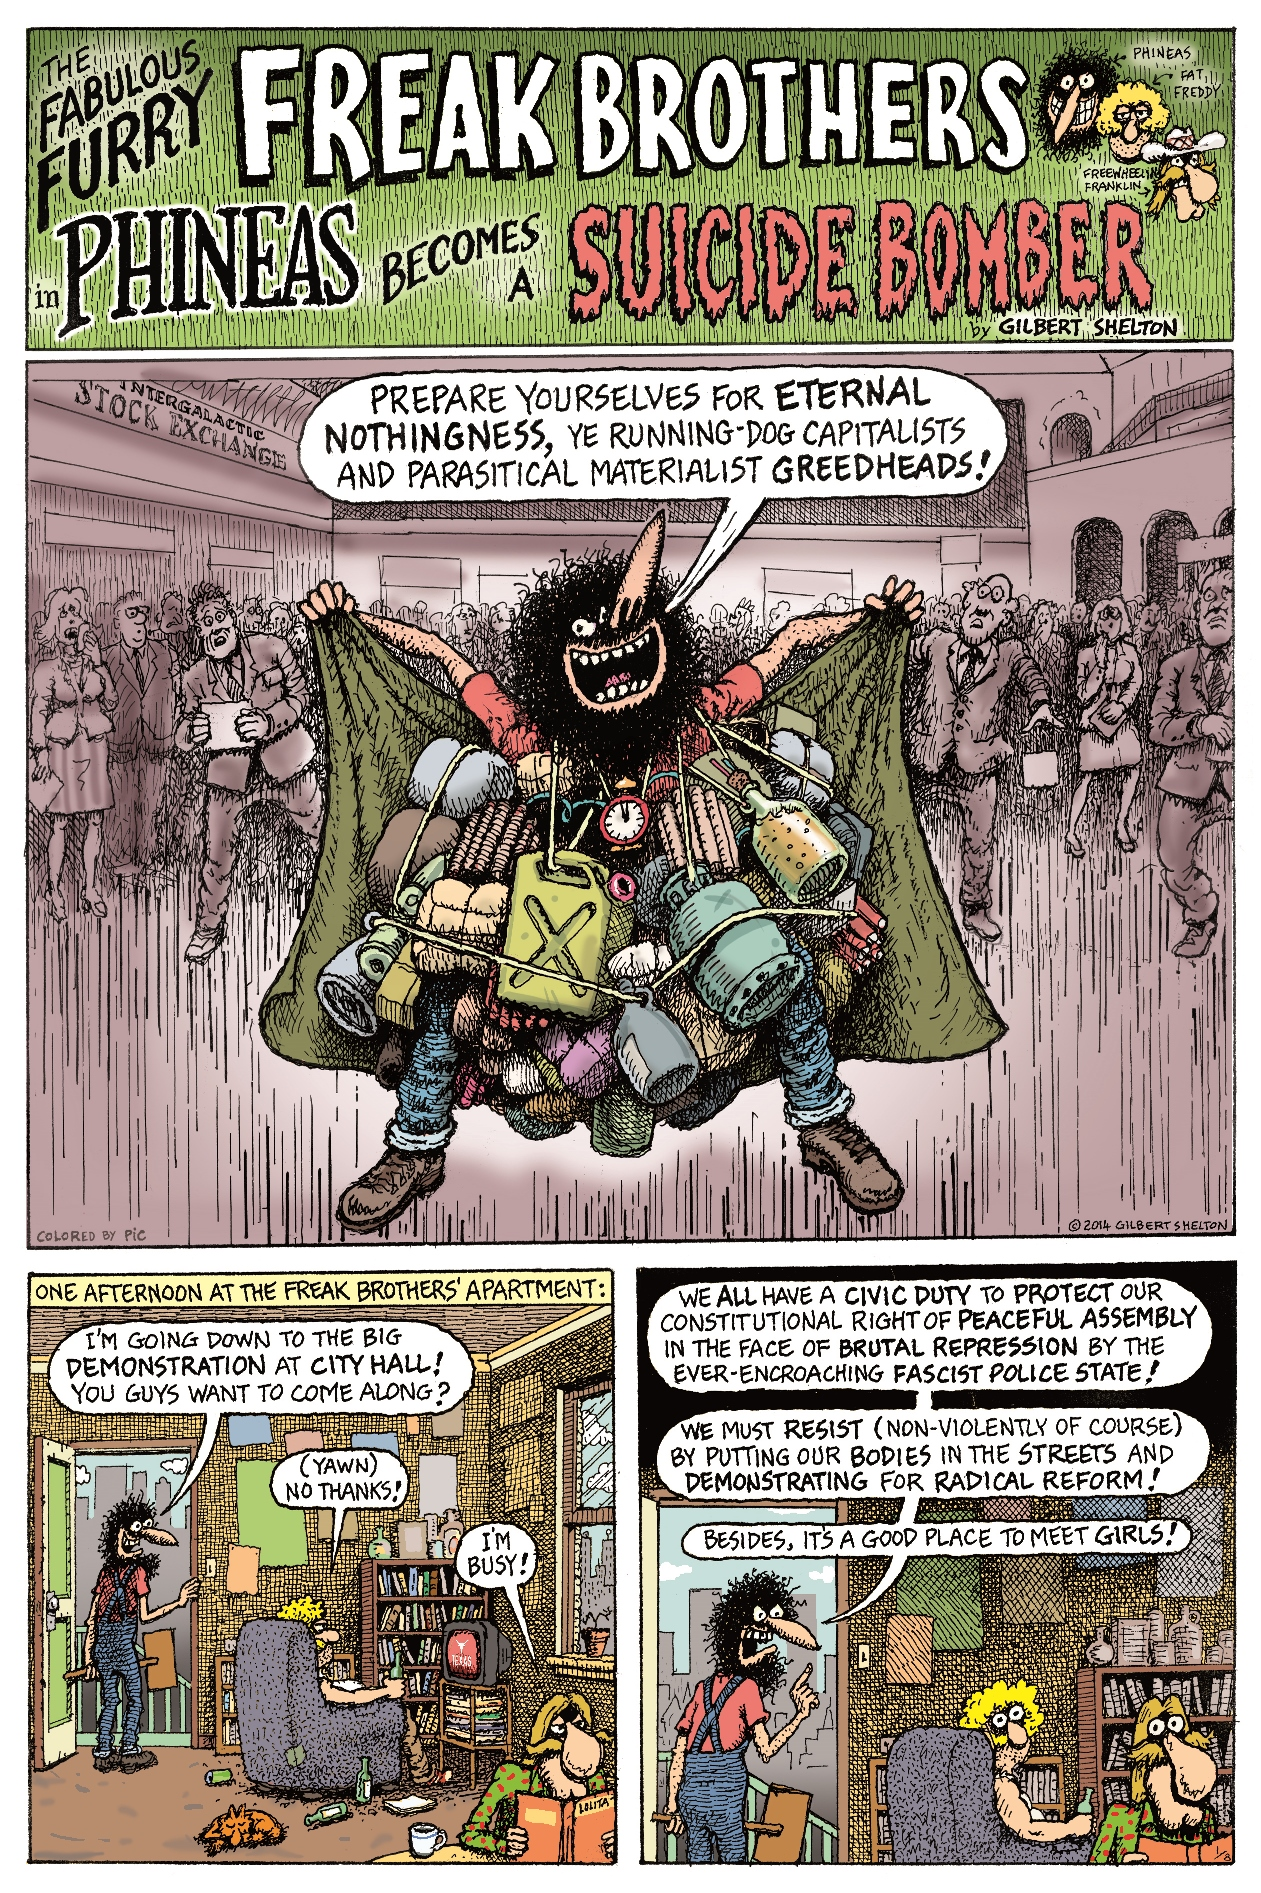 SUICIDE-BOMBER-COLORS-F.-et-US-p.1